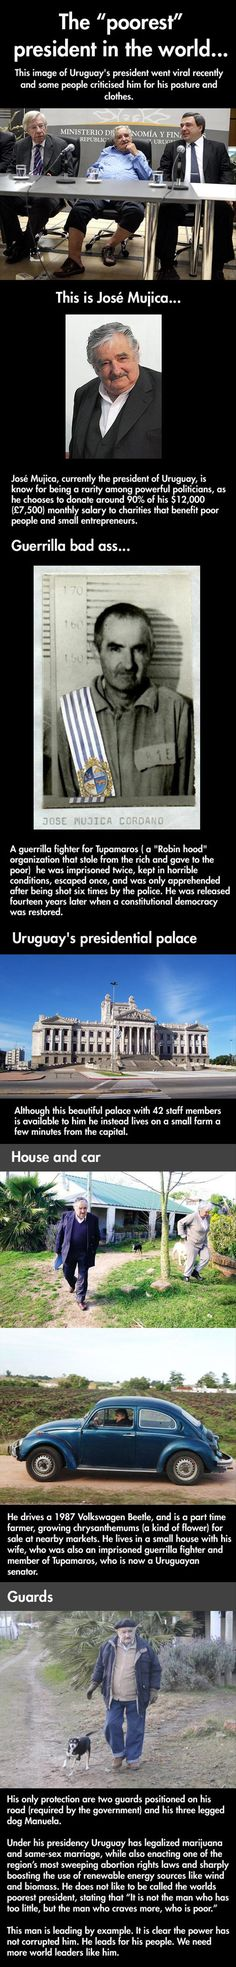 The President Of Uruguay Has My Vote! – 8 Pics  Think BO would consider this?